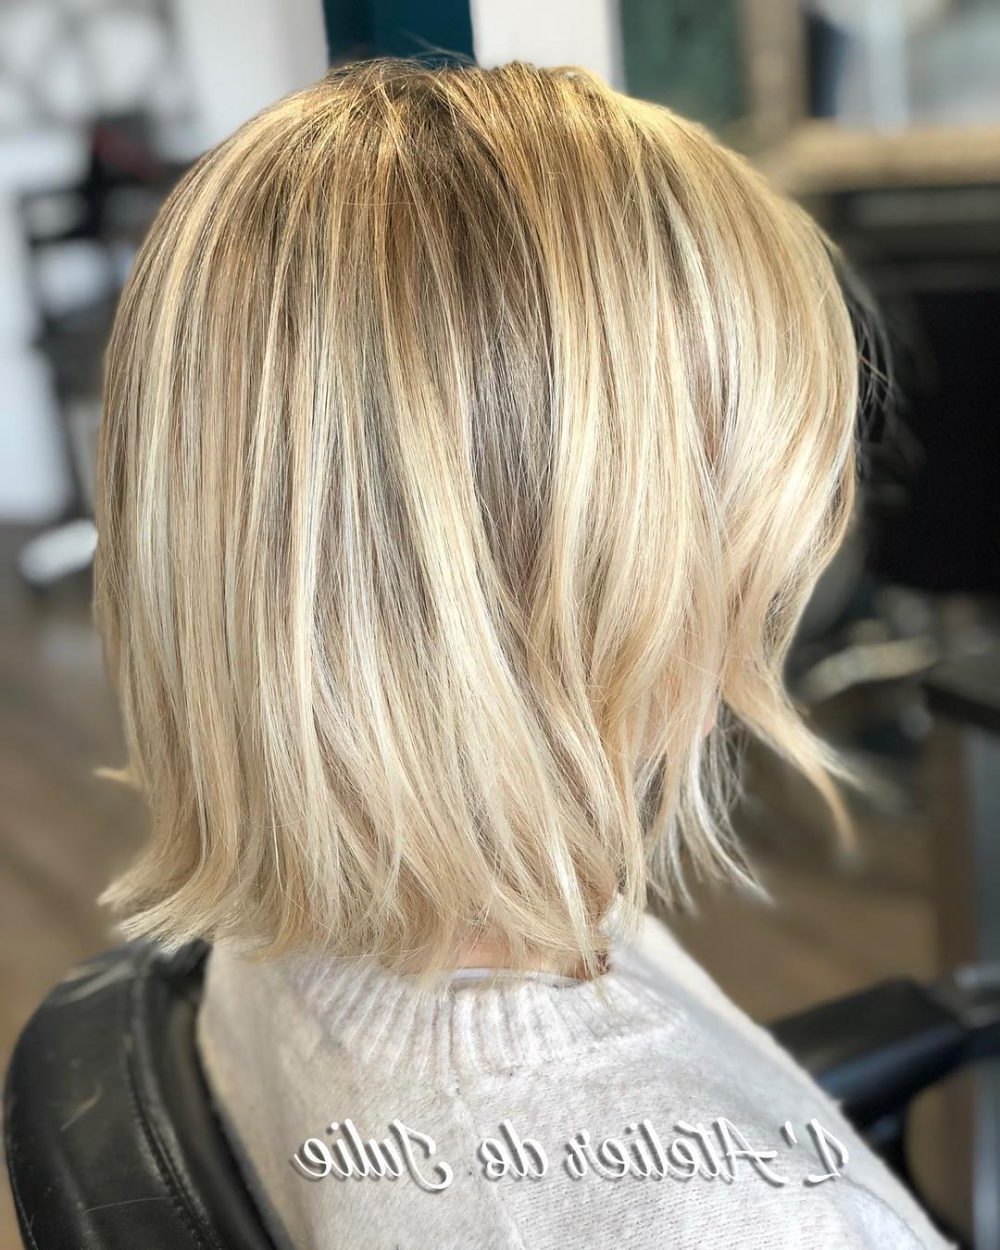 34 Perfect Short Haircuts And Hairstyles For Thin Hair (2018) Within Short Hairstyles For Thinning Hair (View 9 of 25)